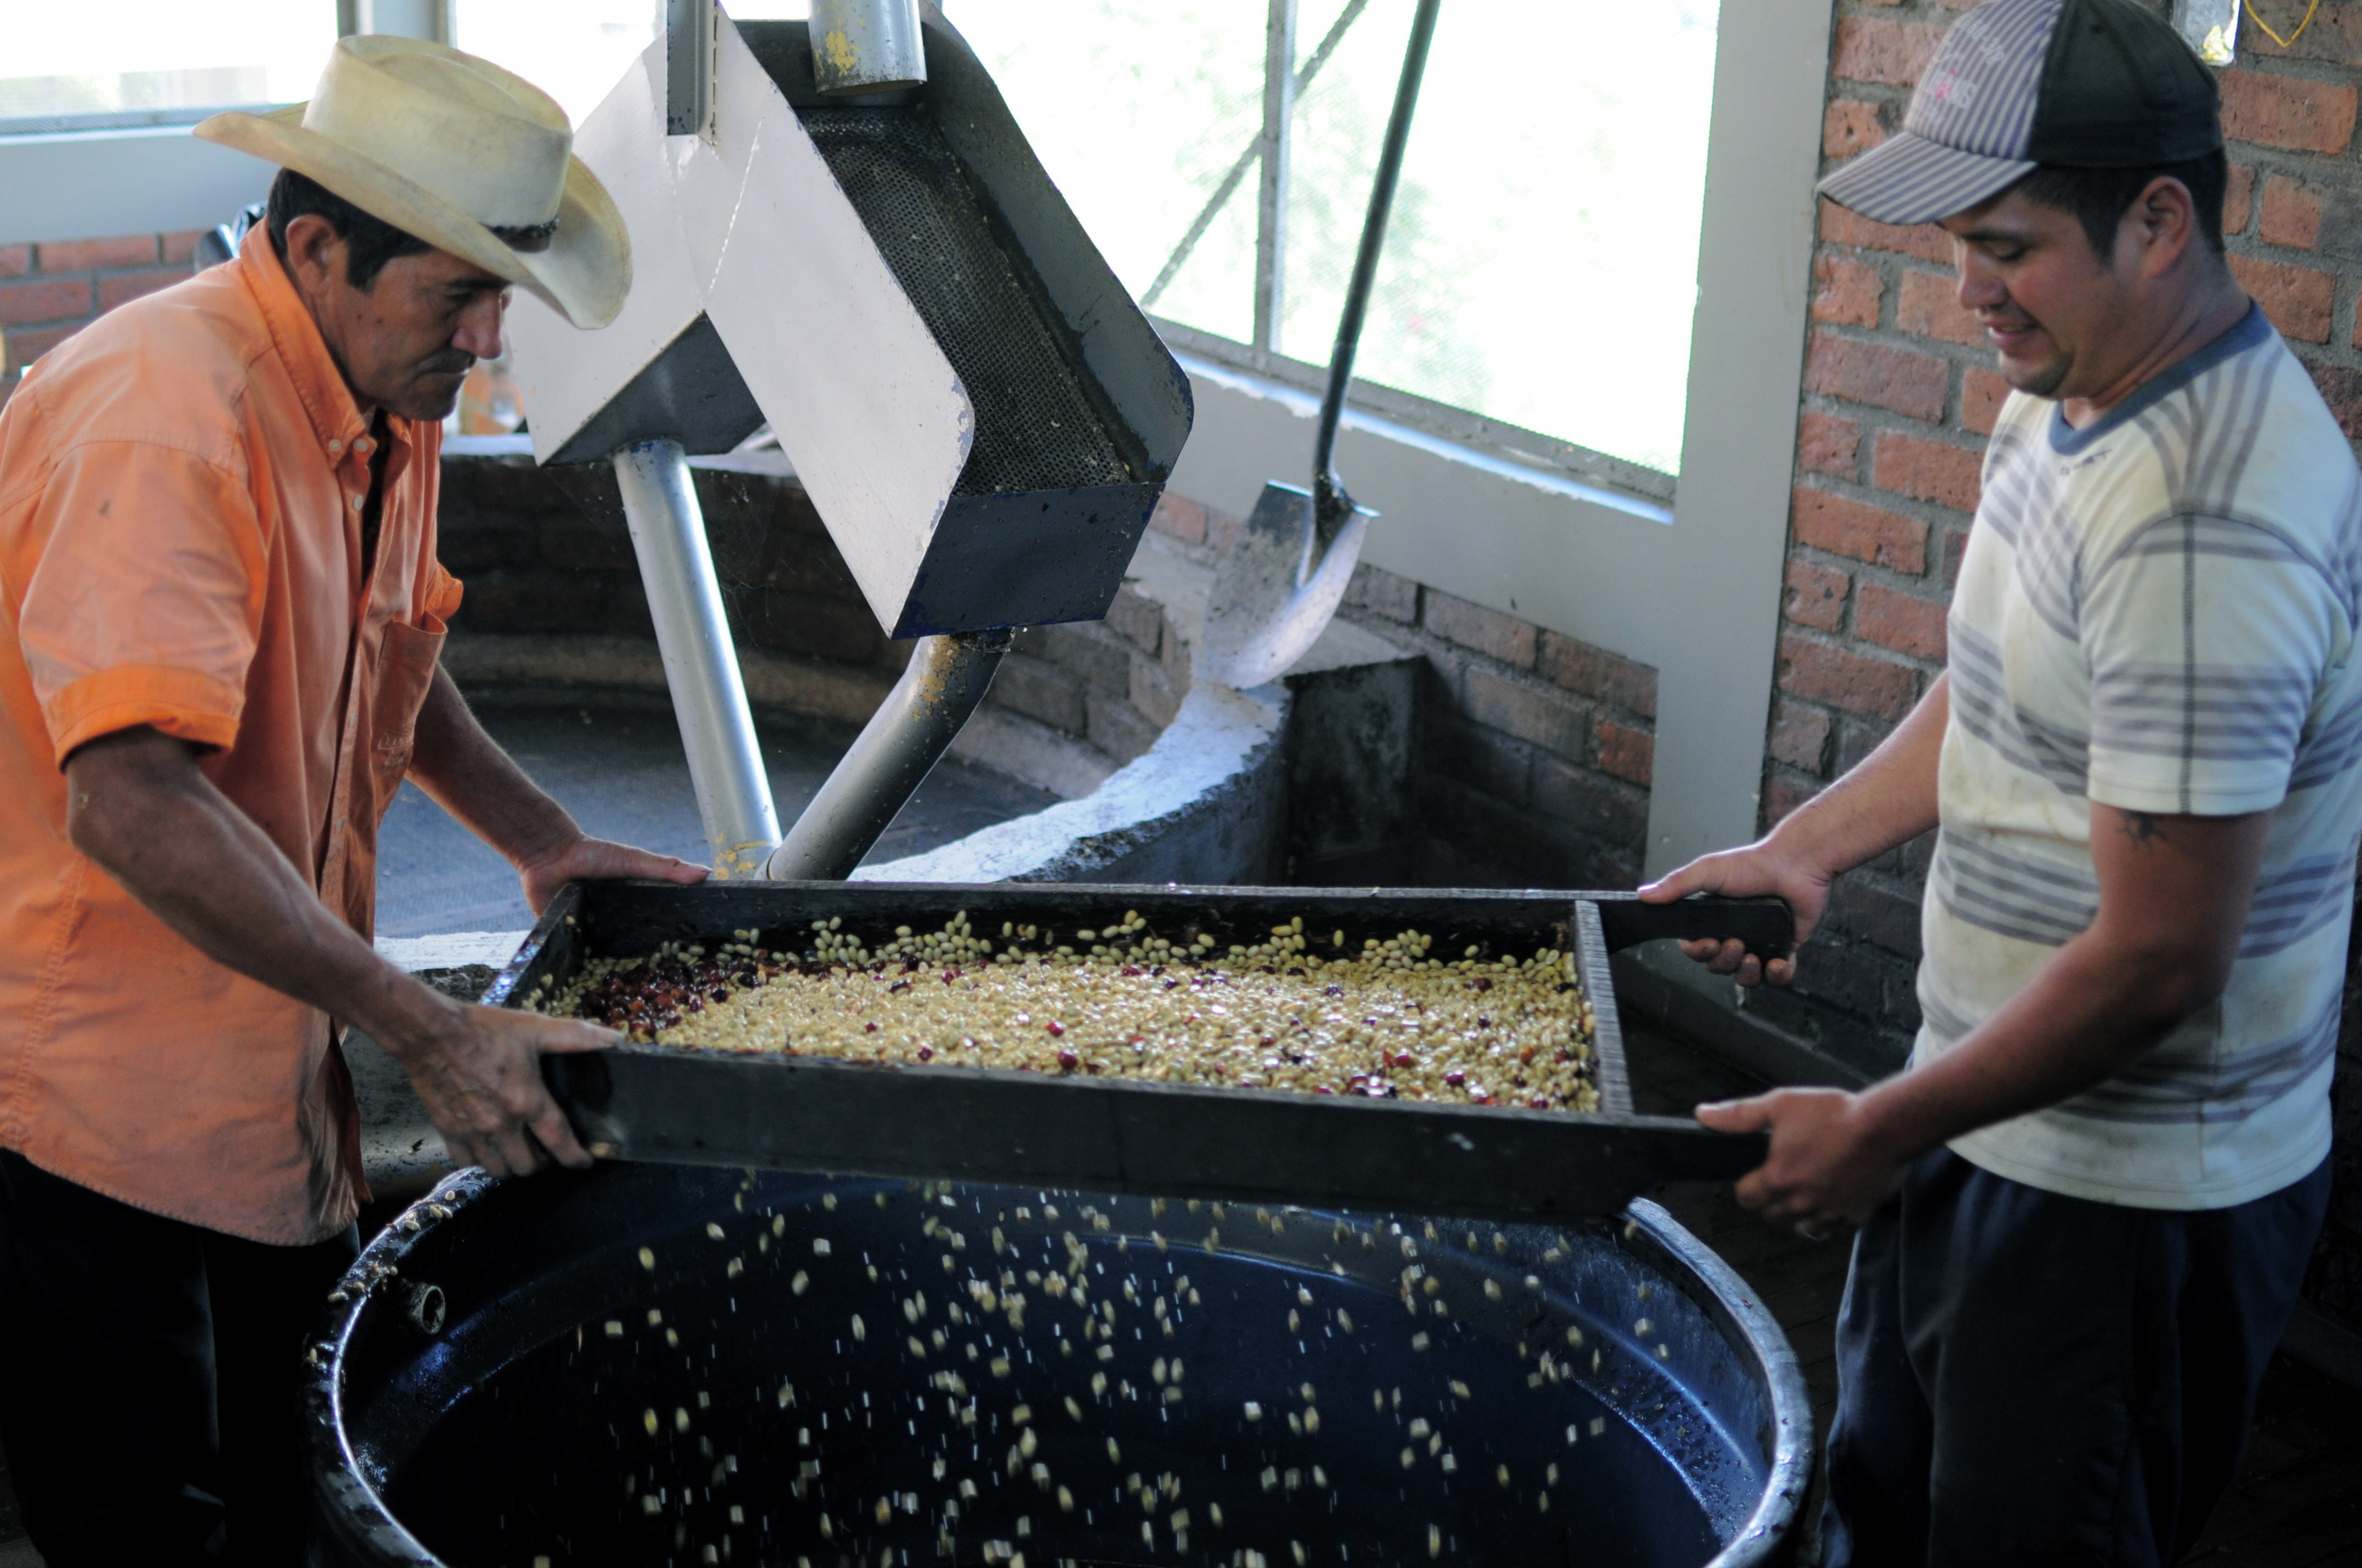 Seeds are then manually sorted to remove any remaining cascara or defects.  Everything is sorted into taza (cup profile) and segunda (second tier coffee).